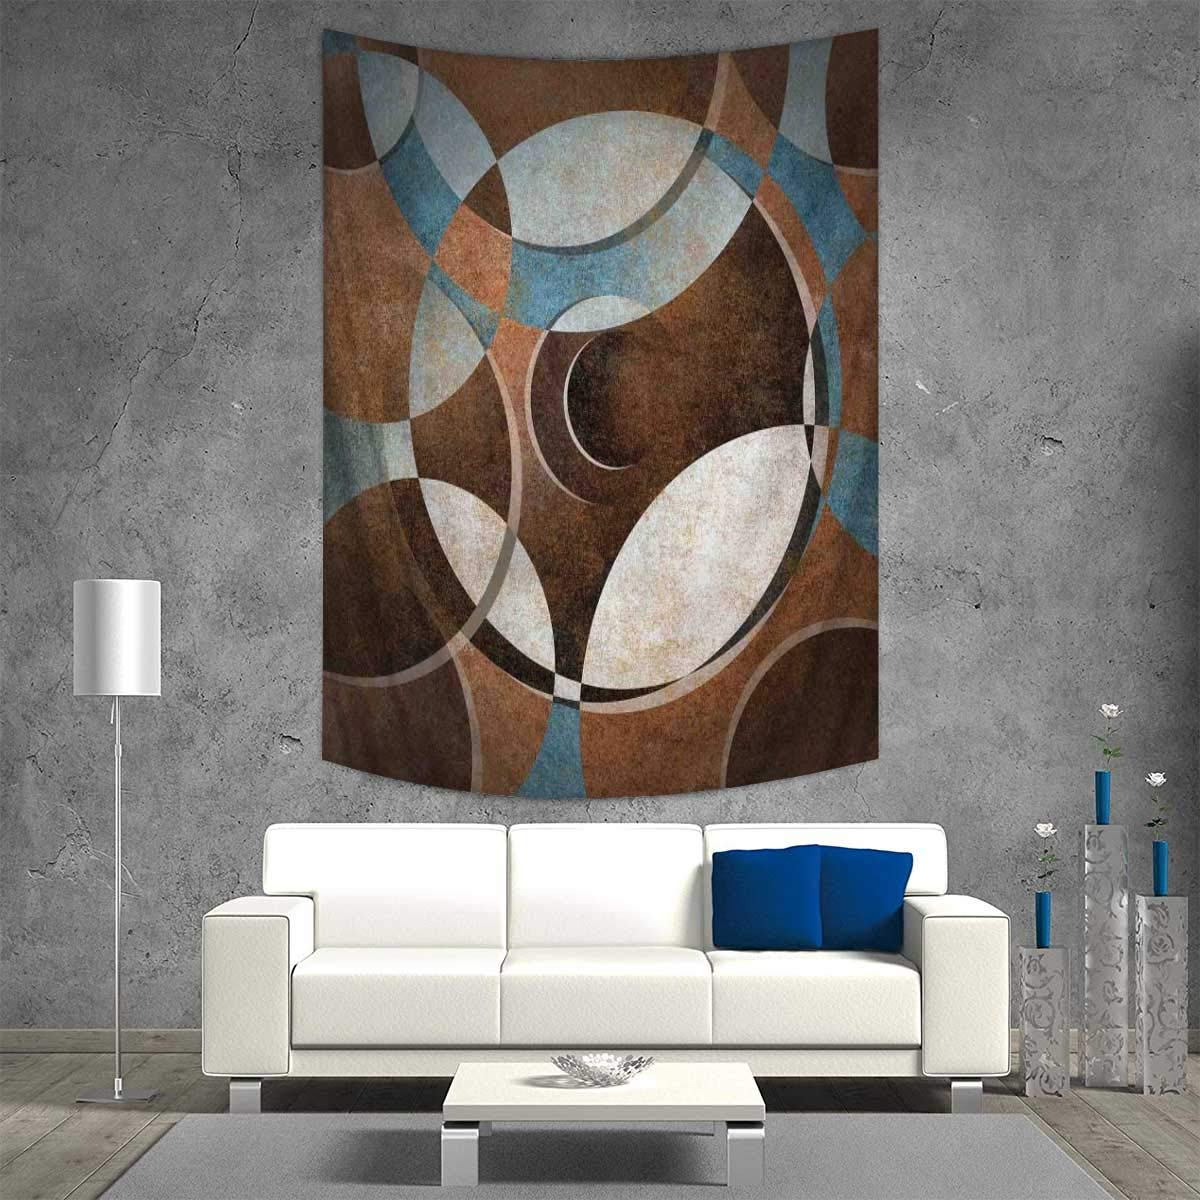 Most Popular Contemporary Abstract Round Wall Decor With Amazon: Abstract Throw, Bed, Tapestry Yoga Blanket Grunge (View 2 of 20)